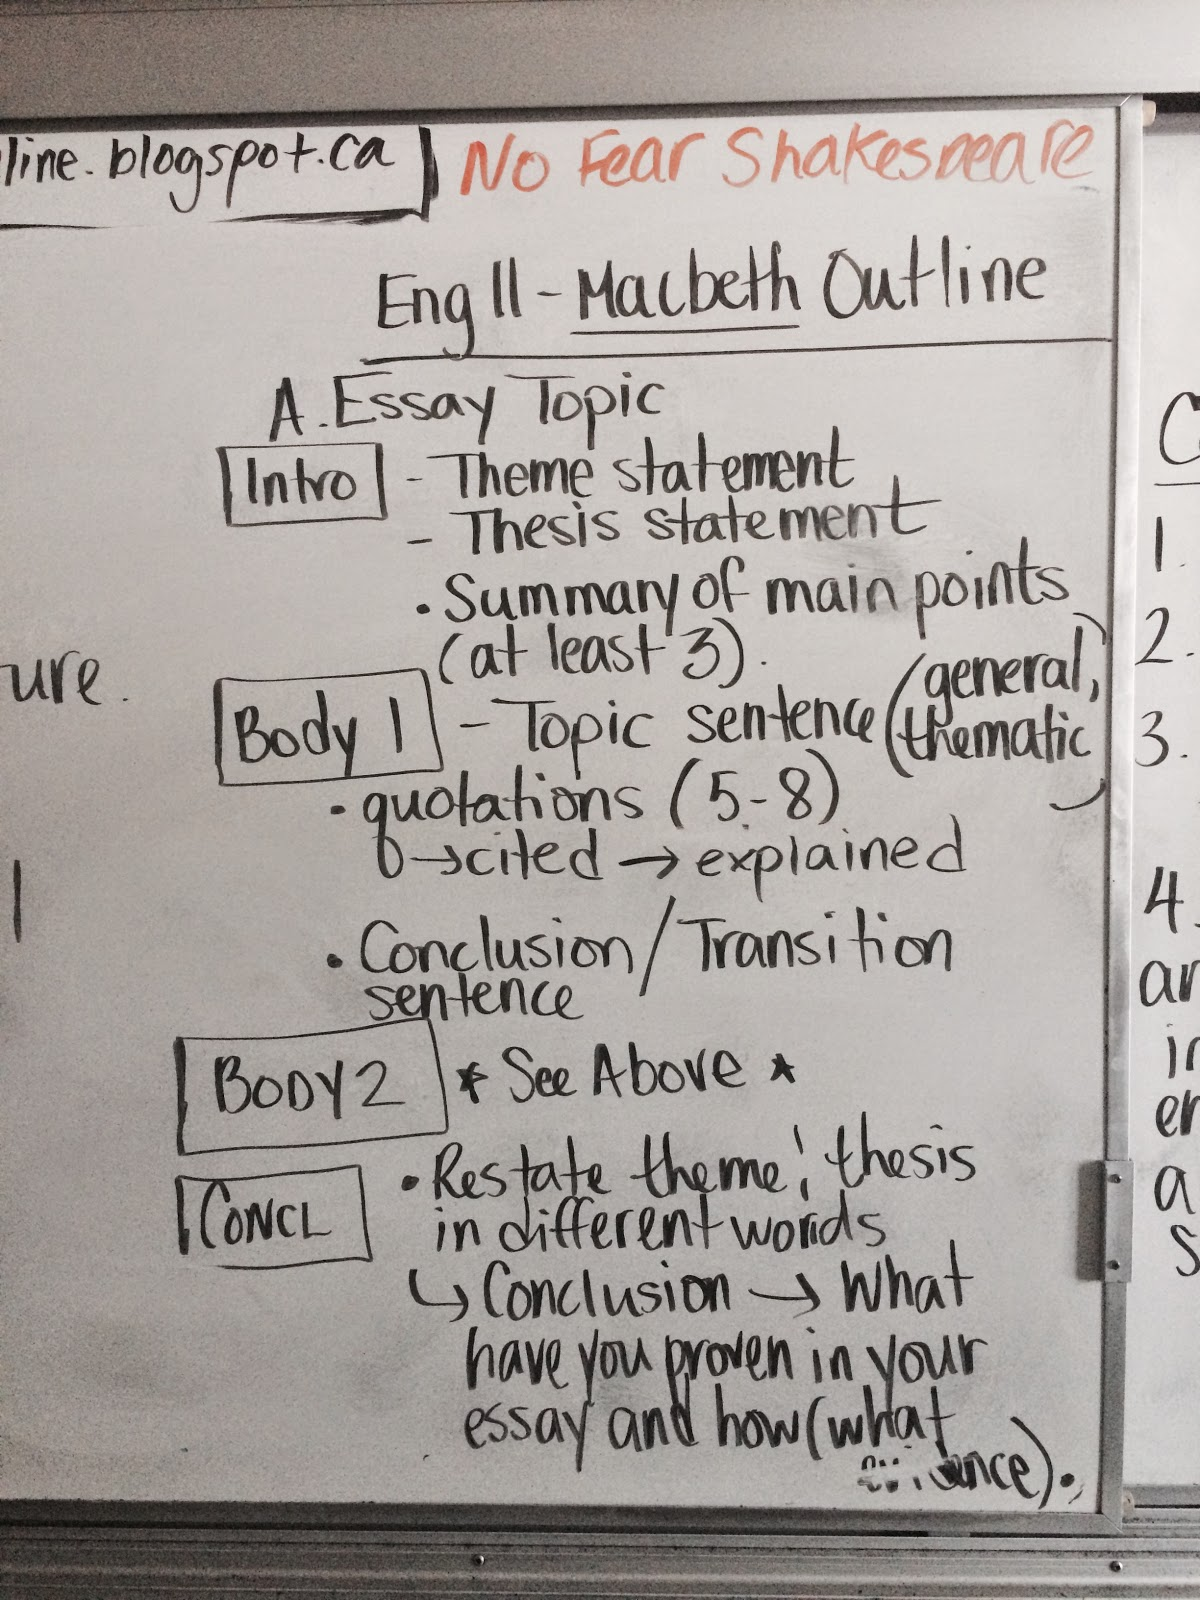 romeo and juliet essay outline compare contrast essay format  macpherson online english 10 romeo juliet 1 act v sc i iii 2 answer questions due